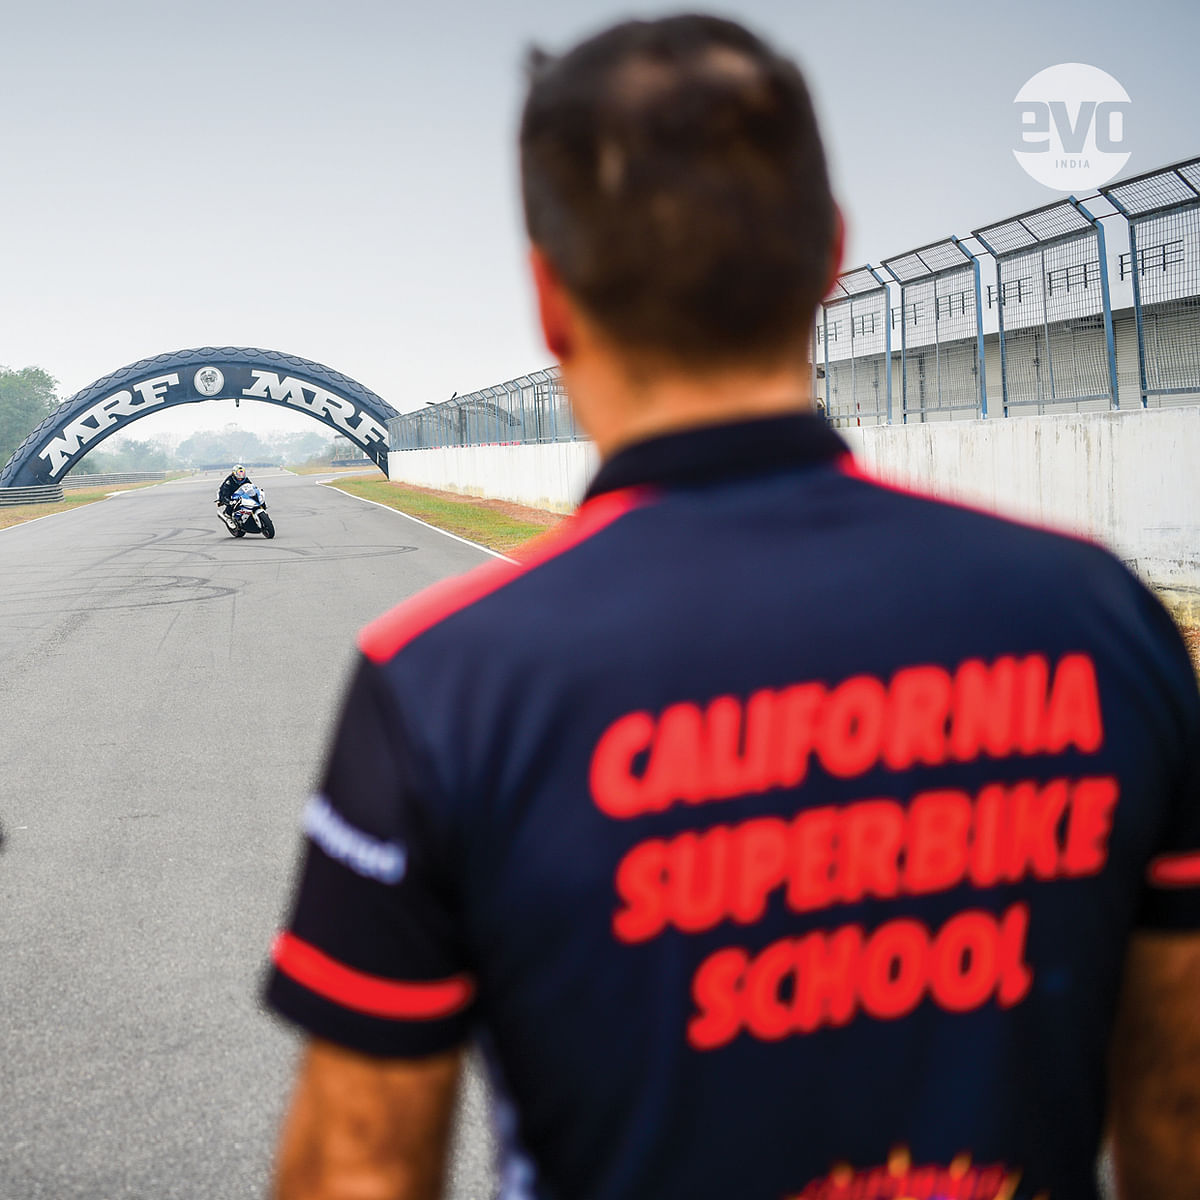 California Superbike School UK goes into liquidation